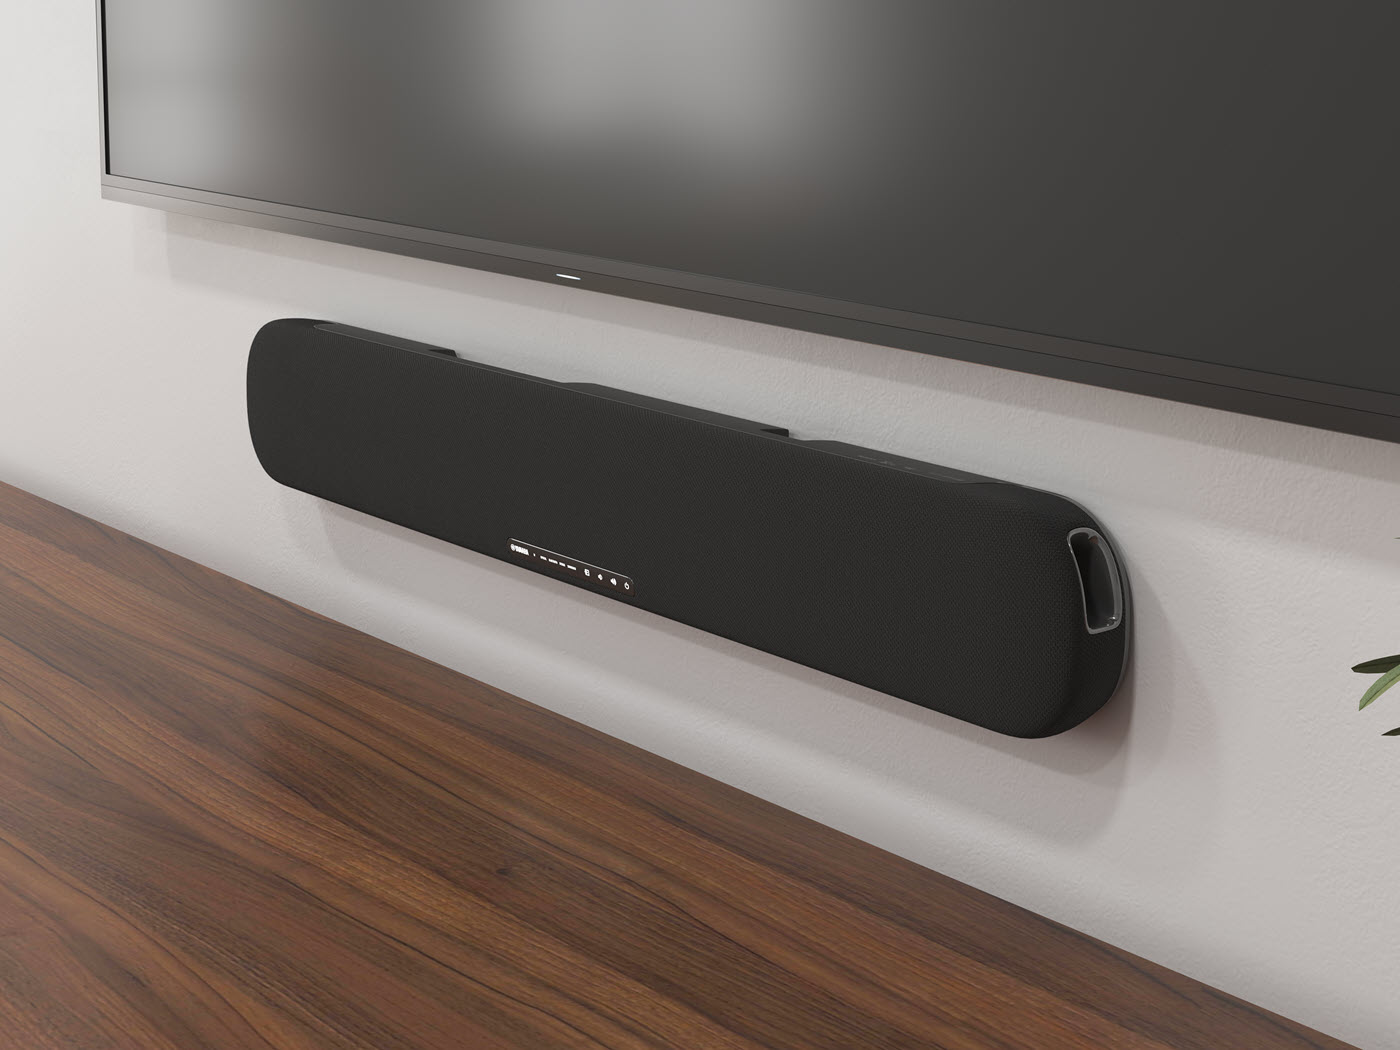 Close-up of a long thing speaker mounted on the wall horizontally under a flat screen TV.